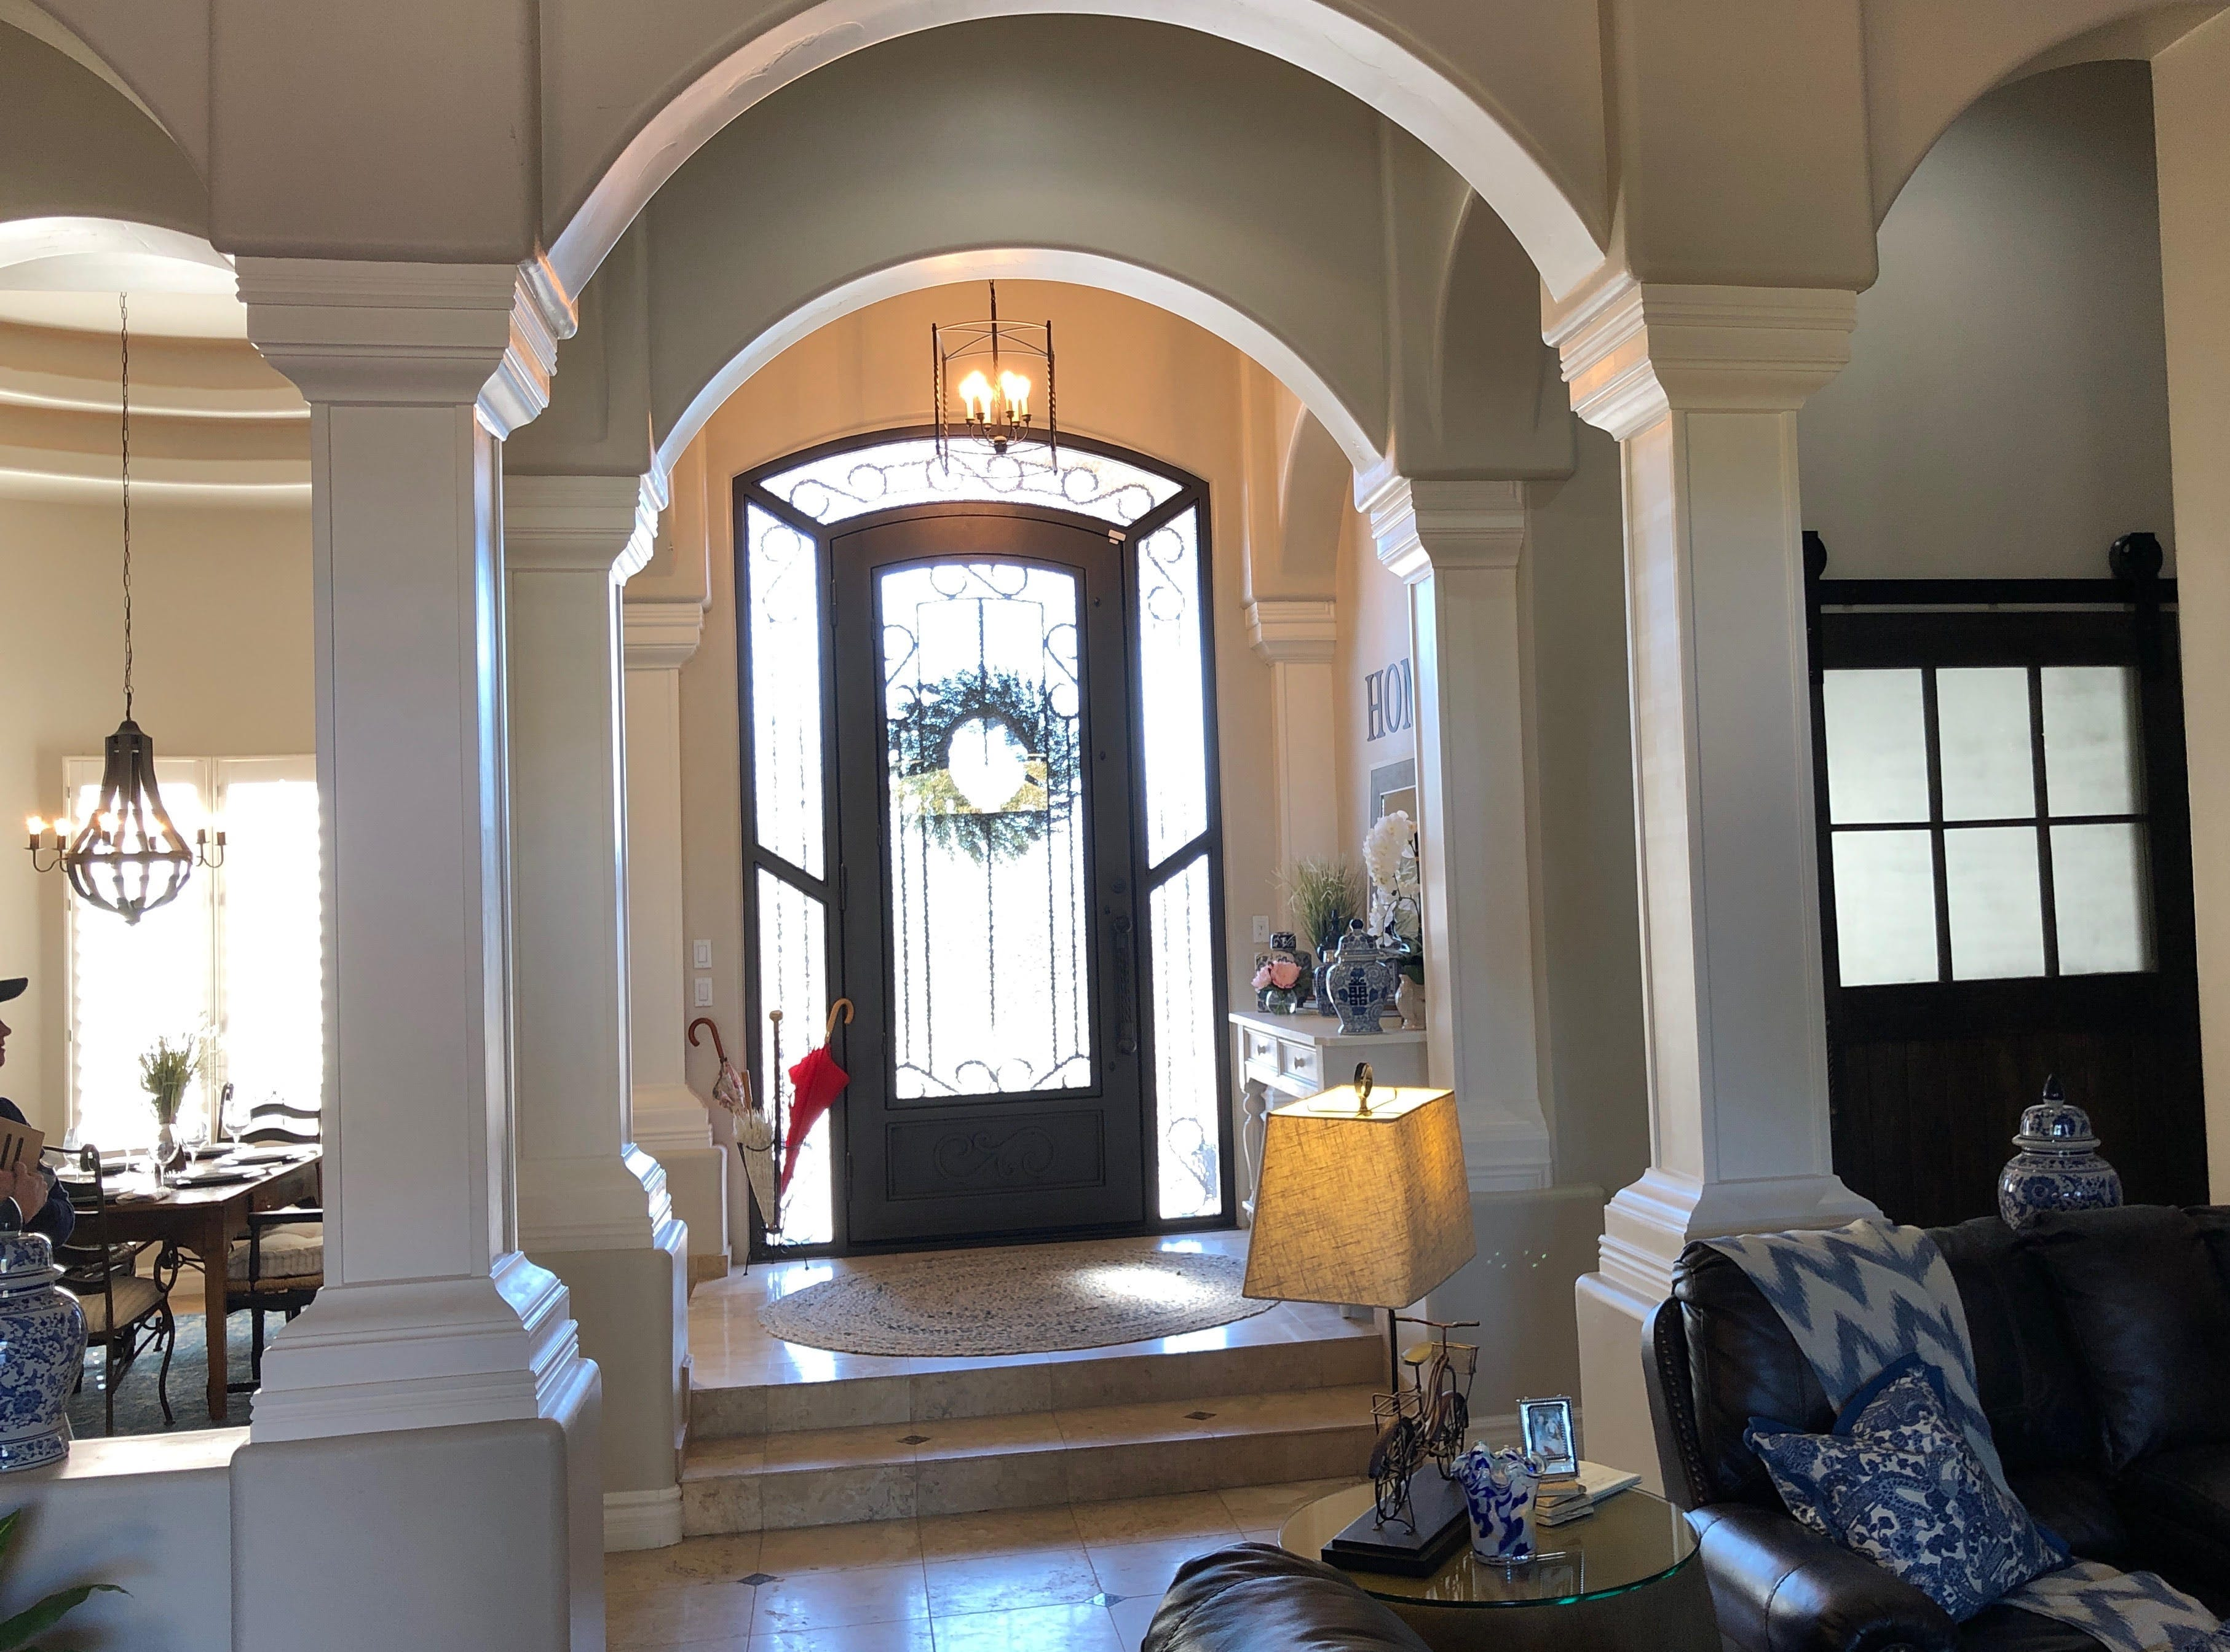 What used to be an open space to the right of the front door was walled off to create Todd's office. Rounded pillars the resemble the ones near the front door were replaced with square wood columns to give the space and updated look.